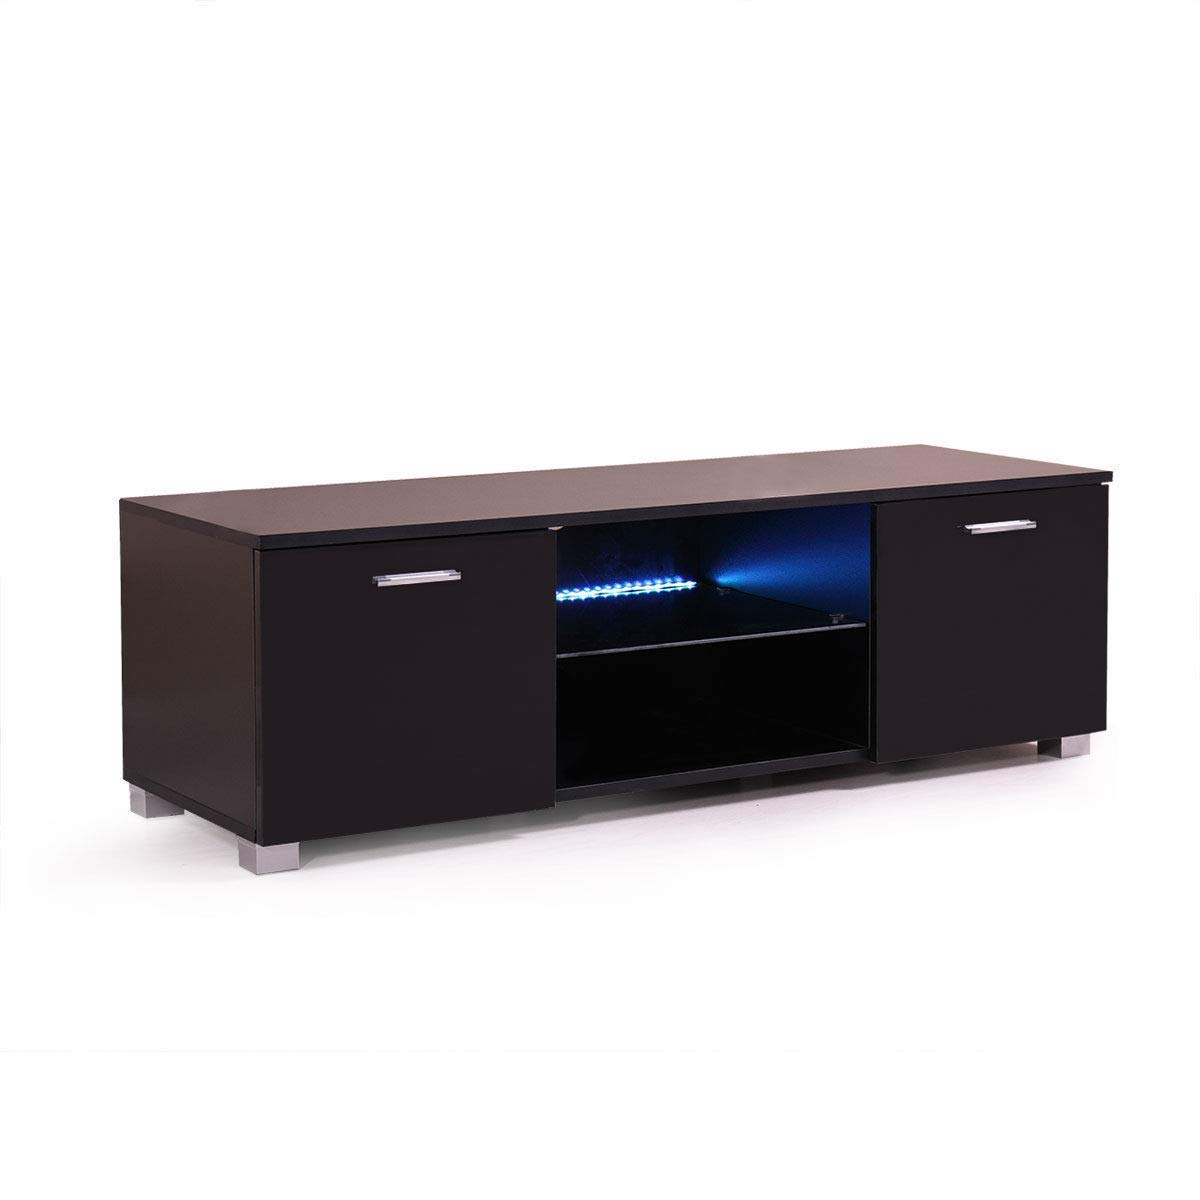 "Lapha'' 47"" Inch Black TV Stand Cabinet Console Furniture Led Unit Shelves Media Gloss Storage with LED Light Shelve Drawer Console High Gloss"